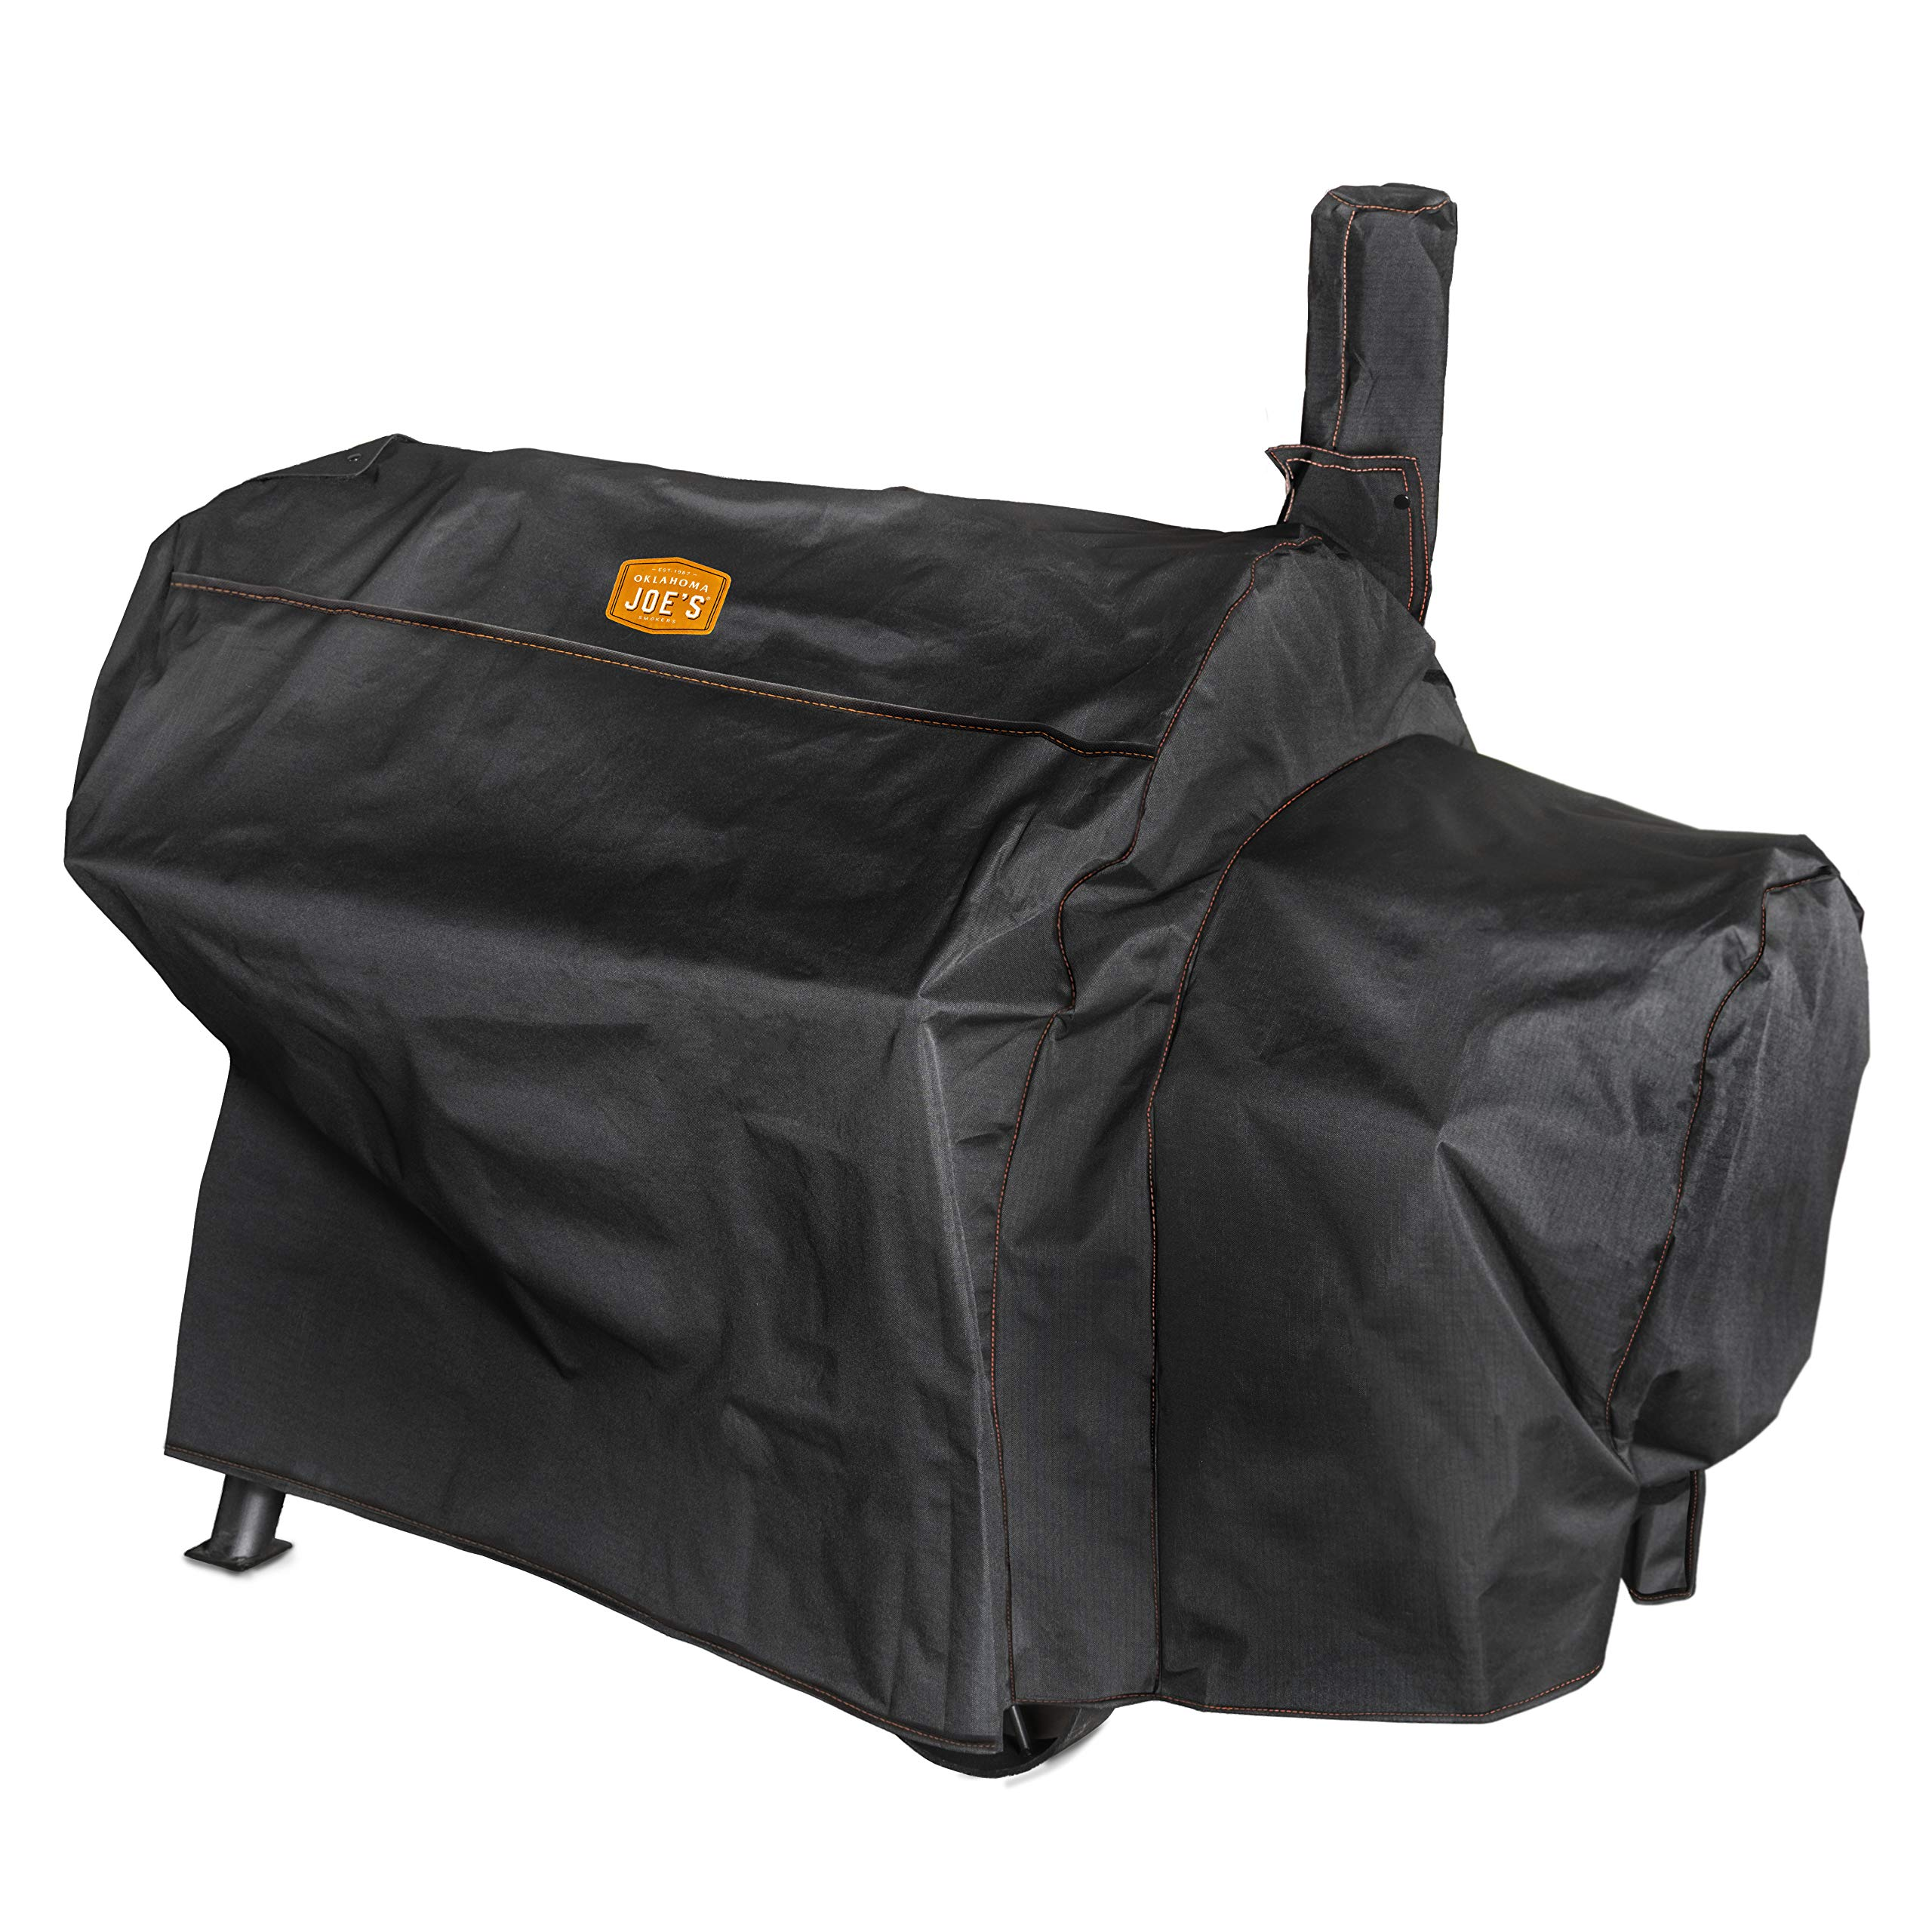 Lodge A1-410 Sportsmans Grill Cover